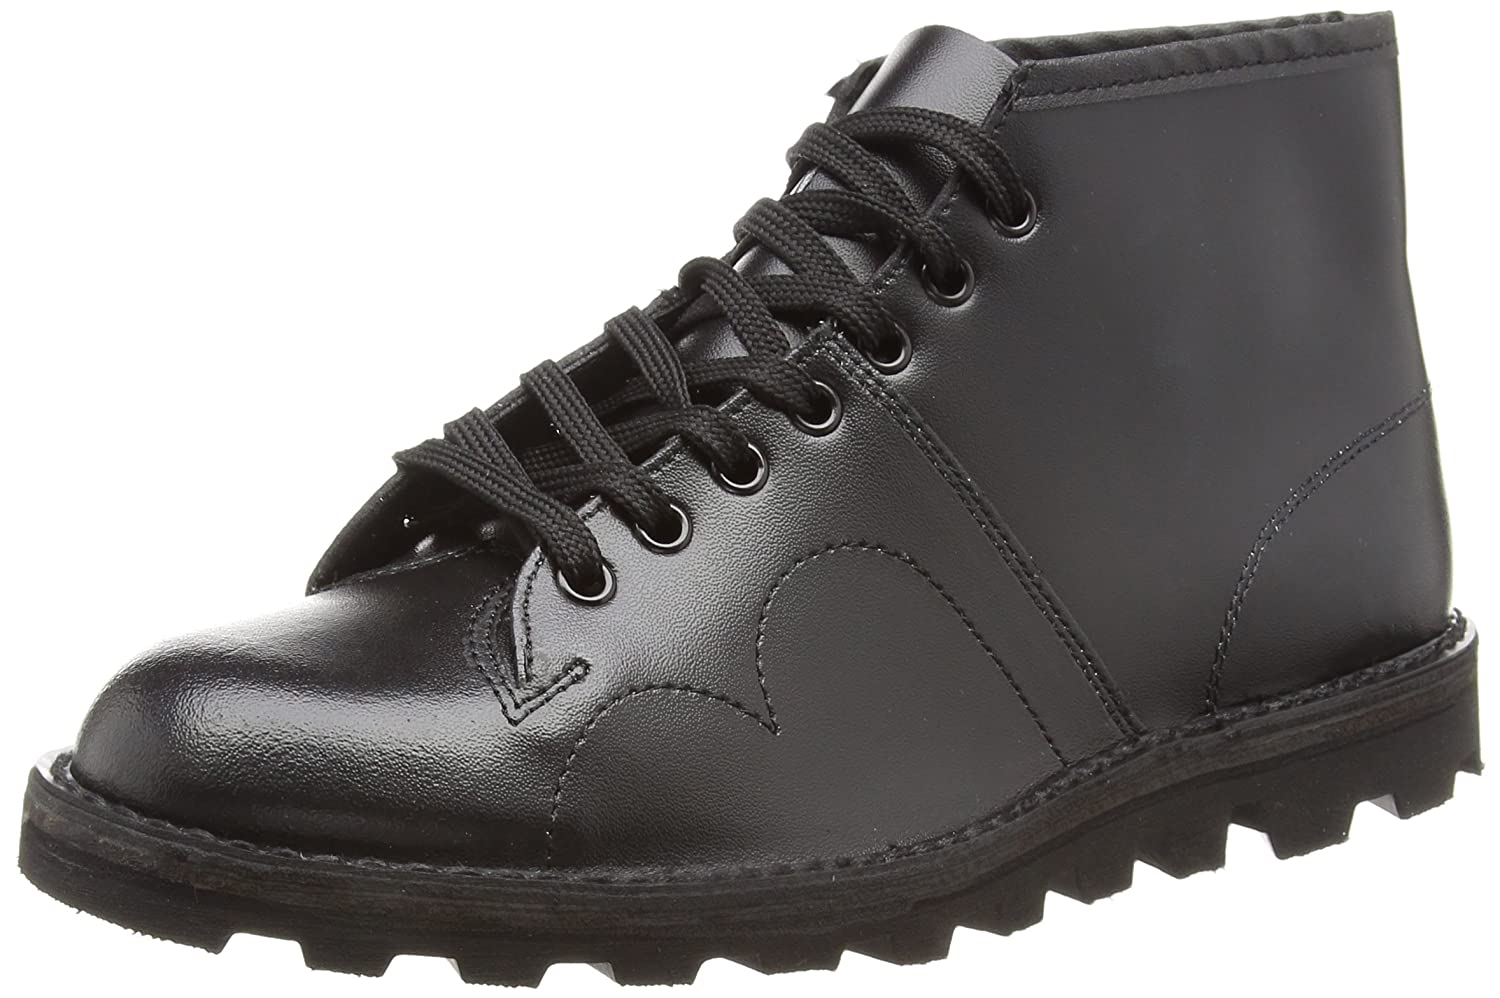 054d60ebd4d Grafters B430A Monkey Boot Unisex Boots In Black.: Amazon.co.uk ...